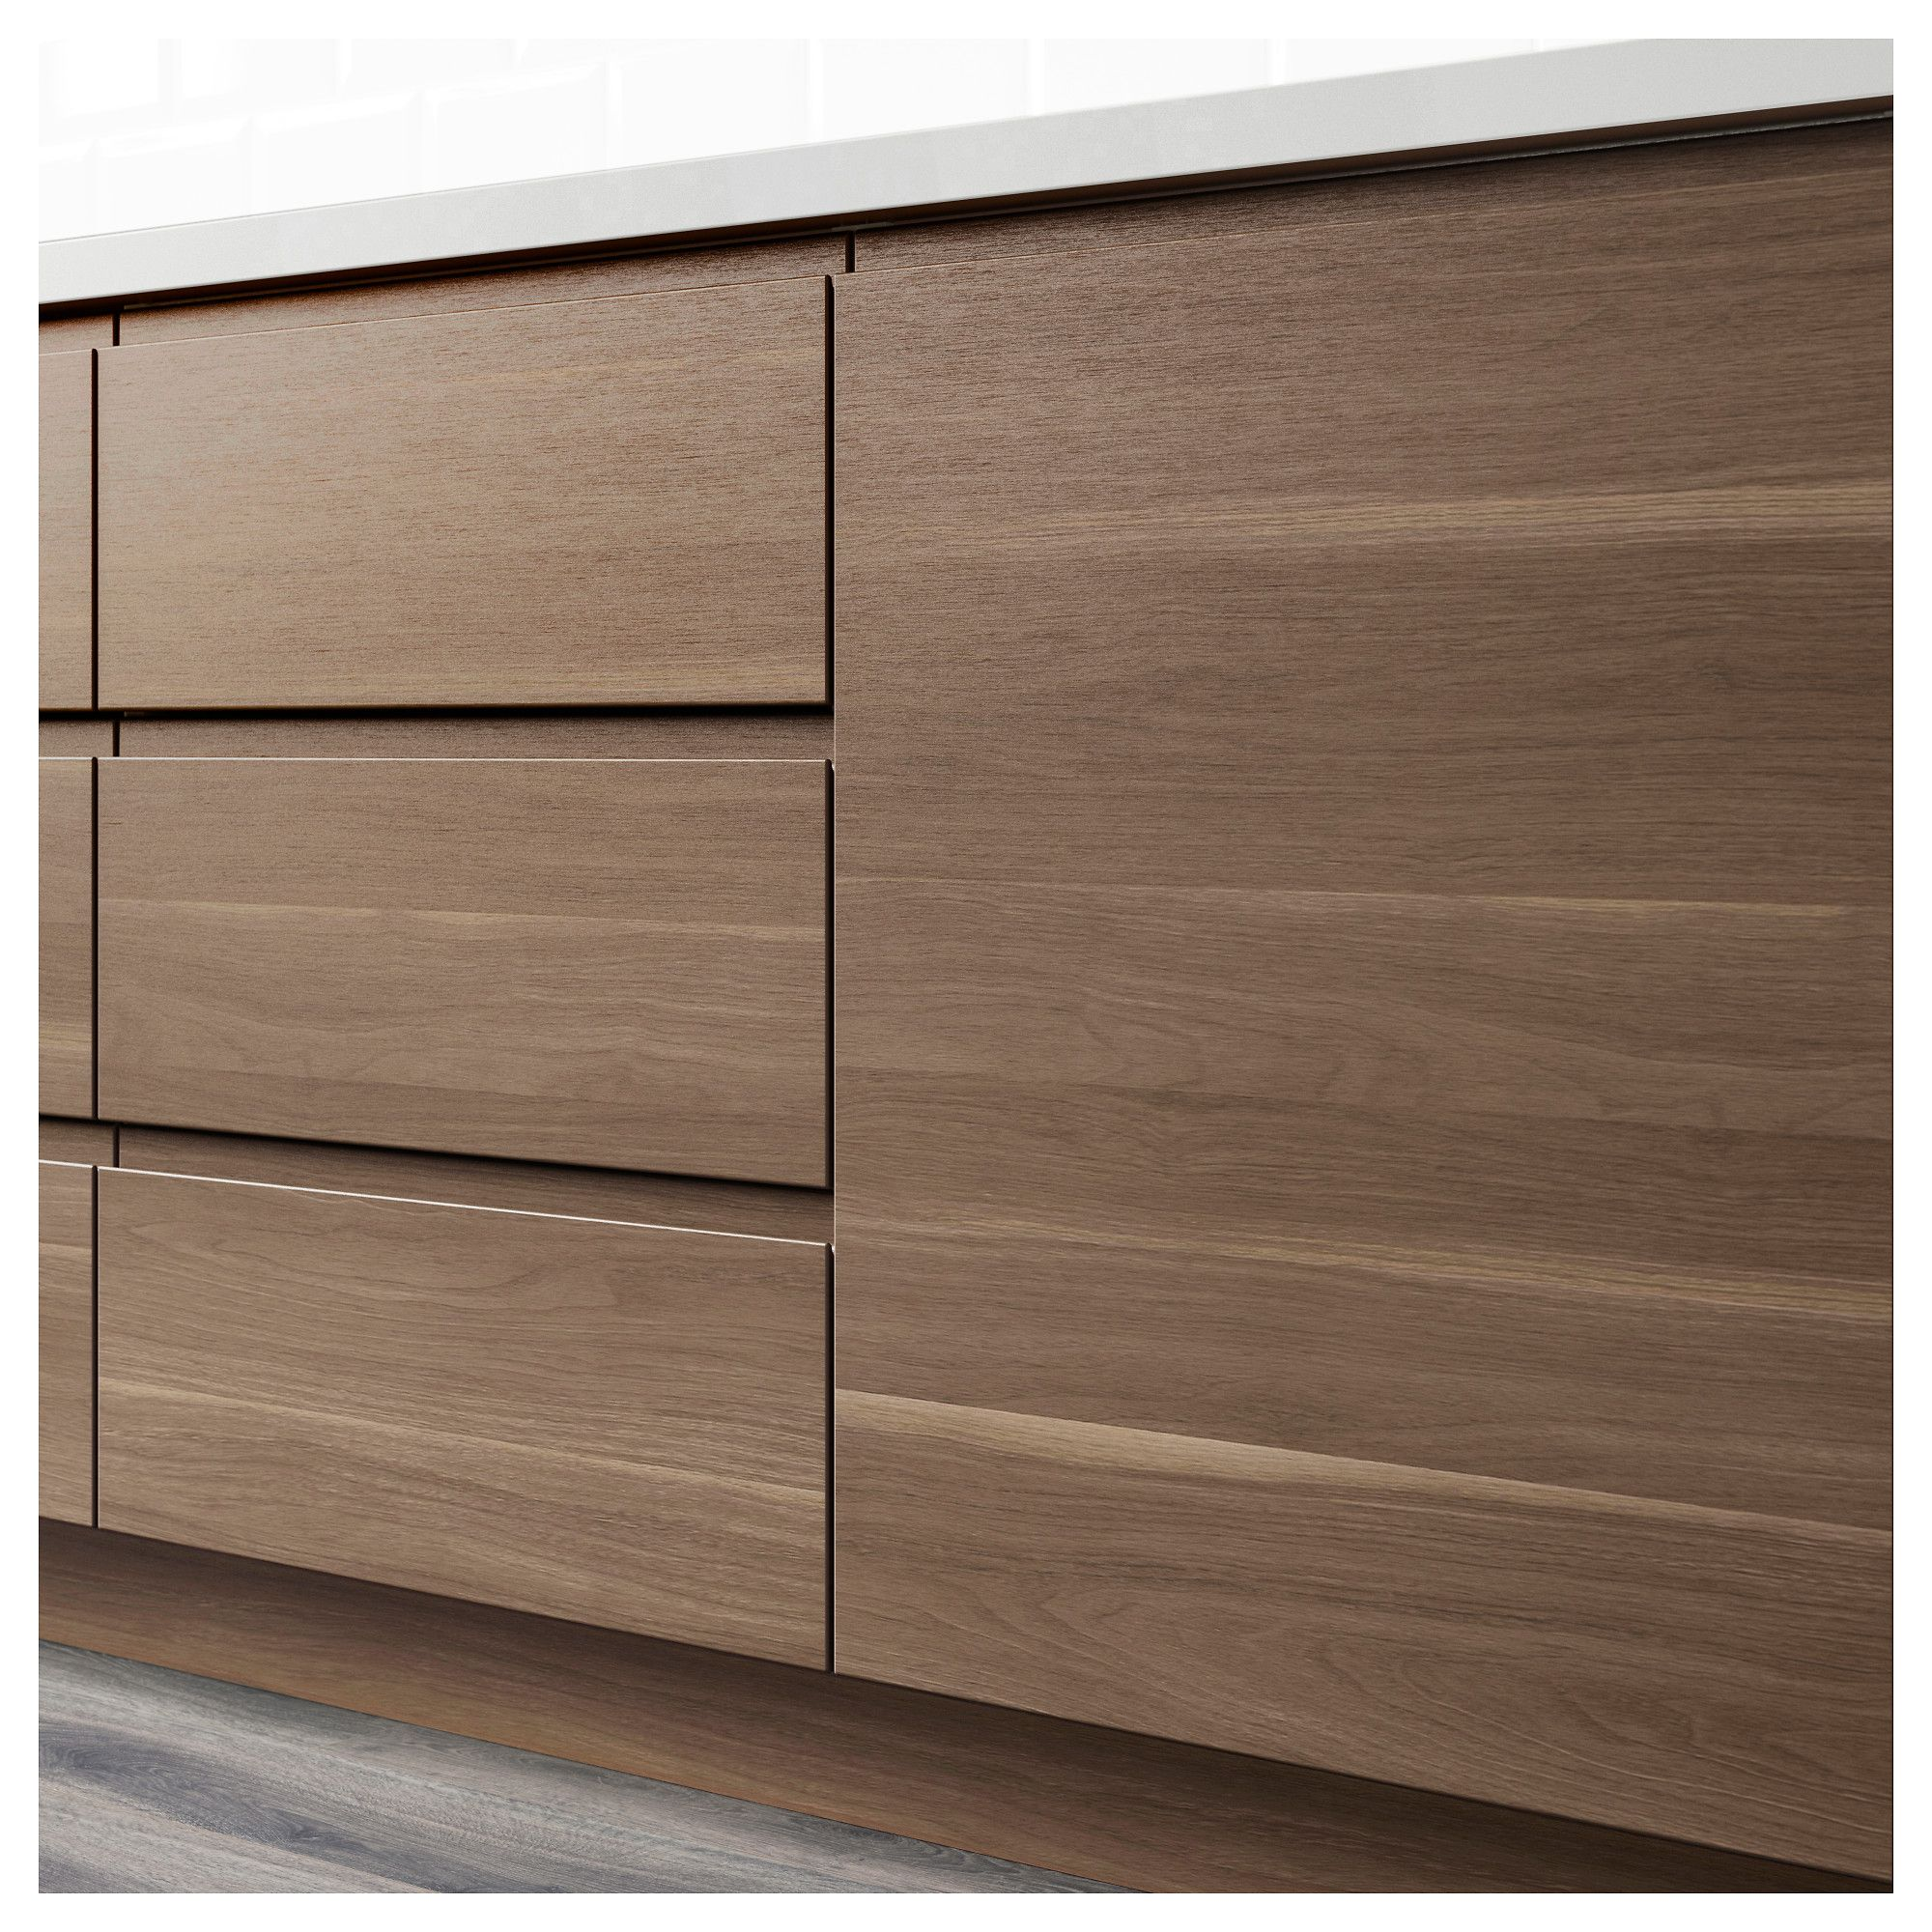 Ikea Voxtorp Ikea Voxtorp Door Walnut Effect Products Keuken